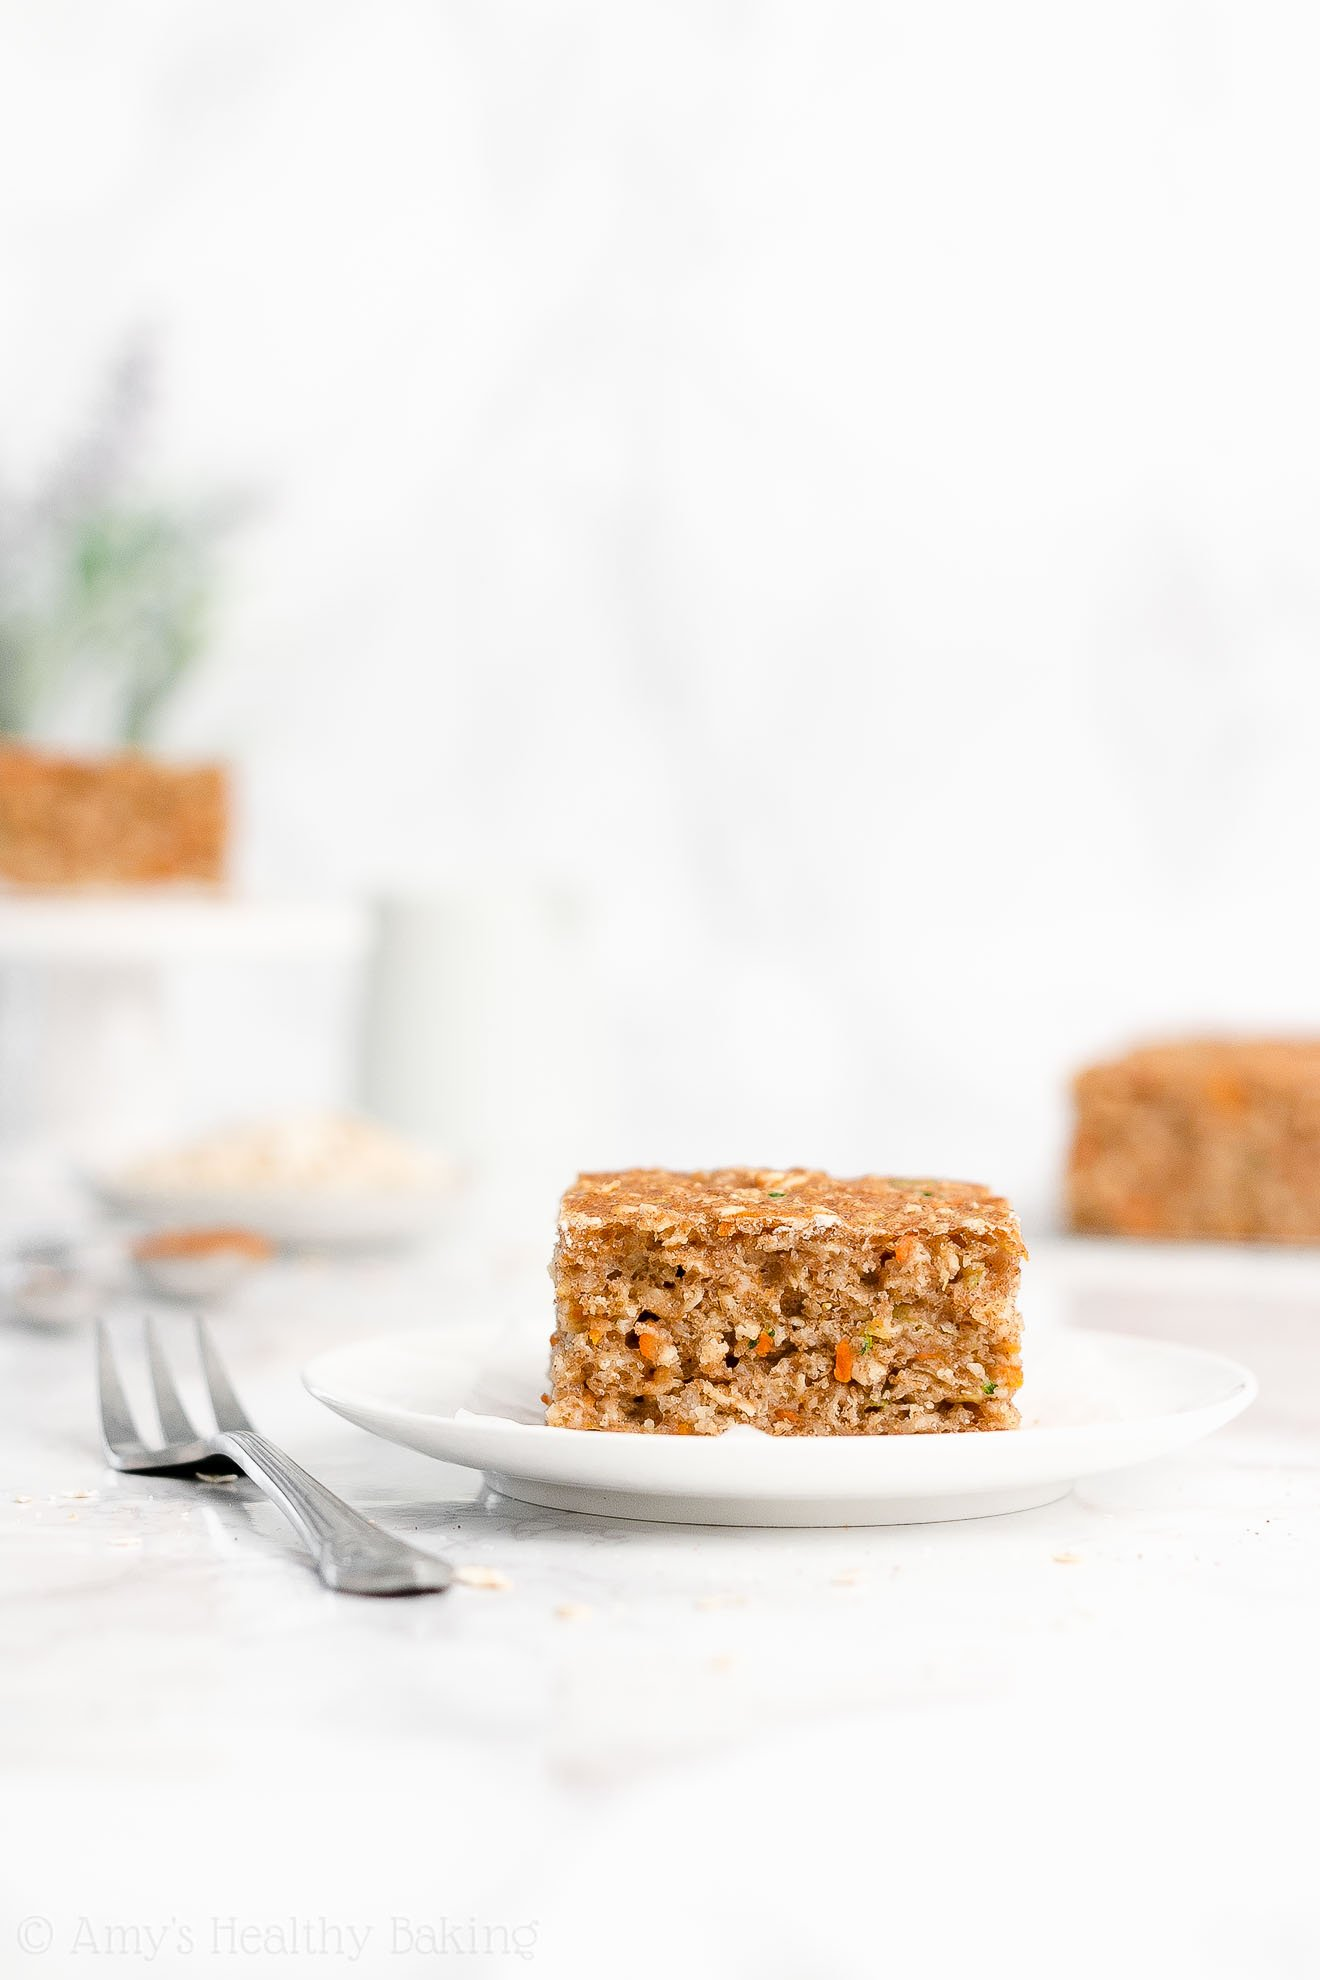 Easy Healthy Low Calorie Greek Yogurt Carrot Zucchini Oatmeal Snack Cake